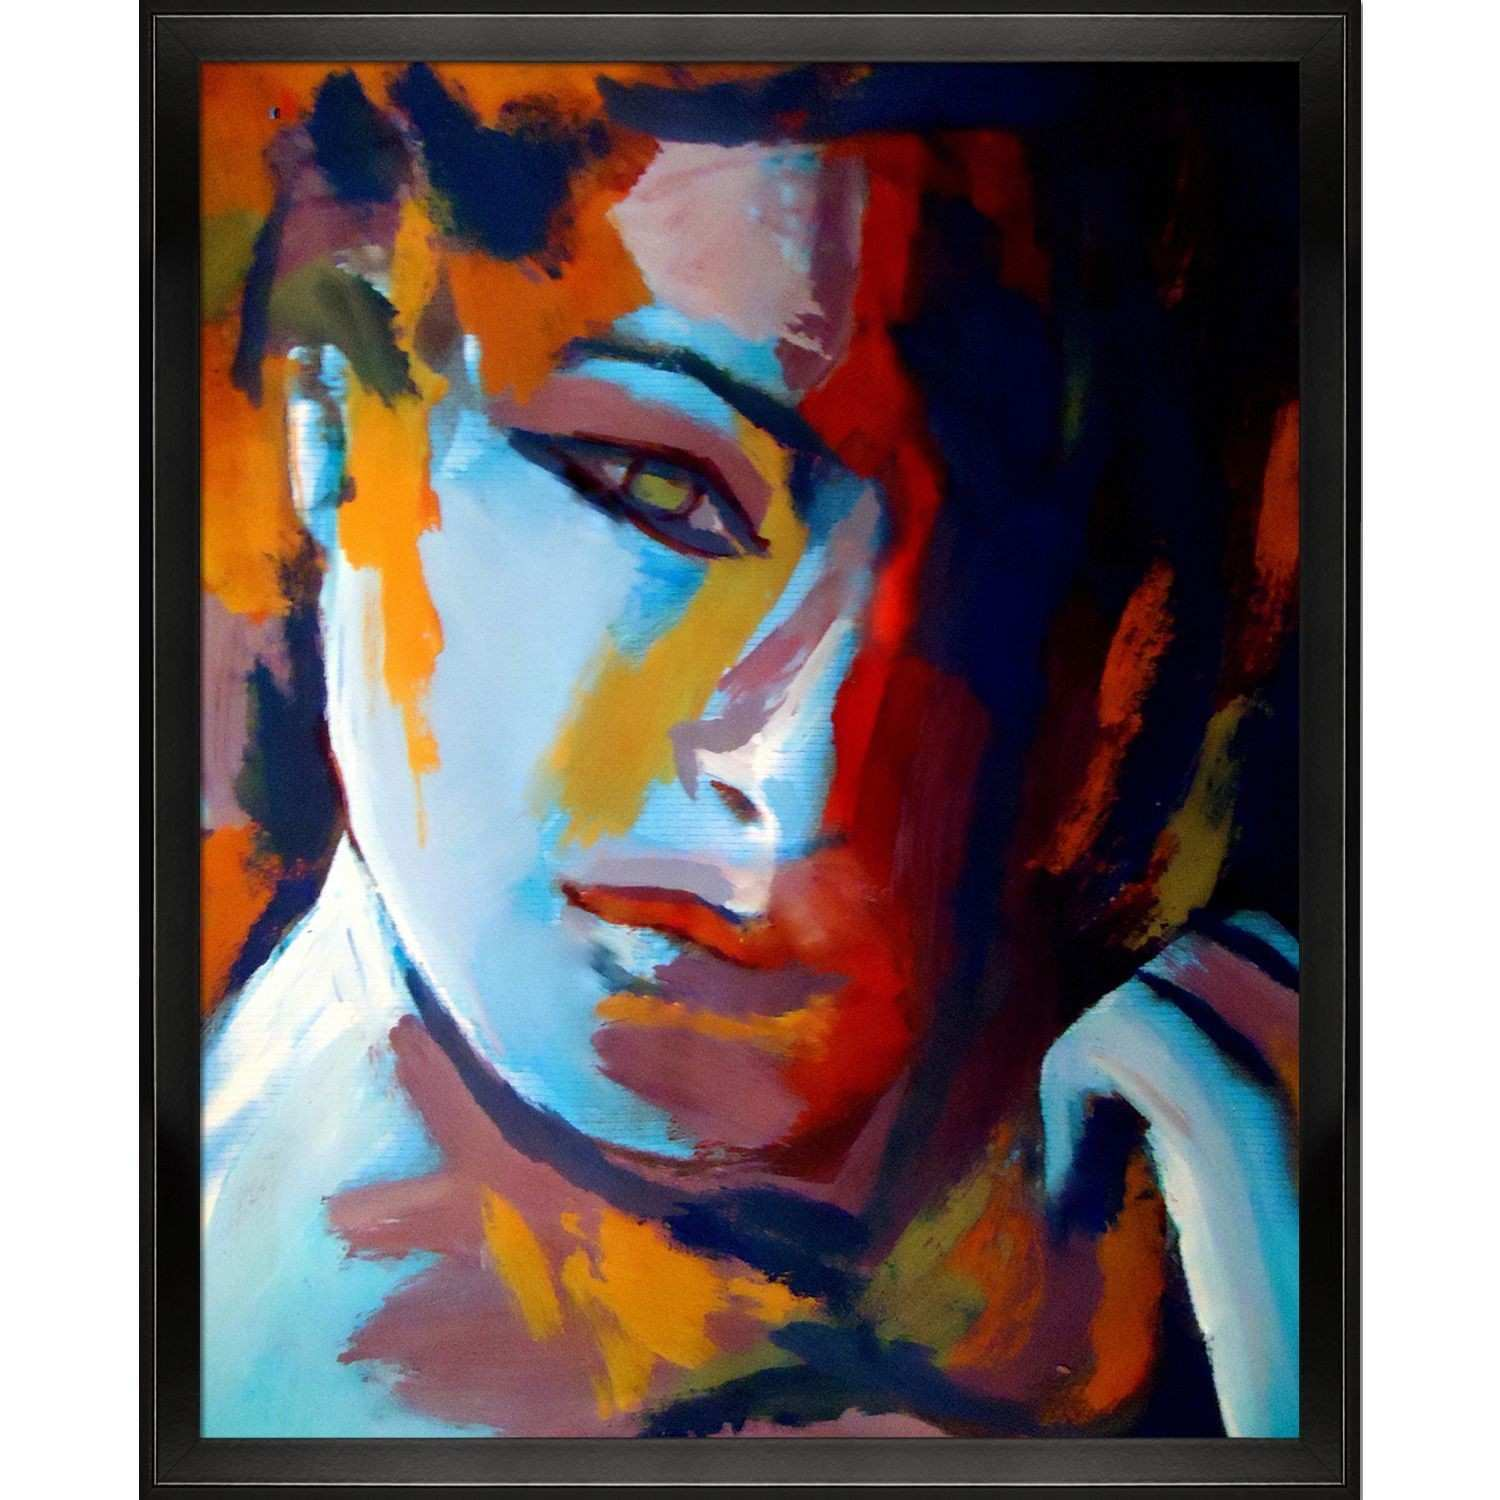 Divided is a colorful expressionist painting of a woman by Helena